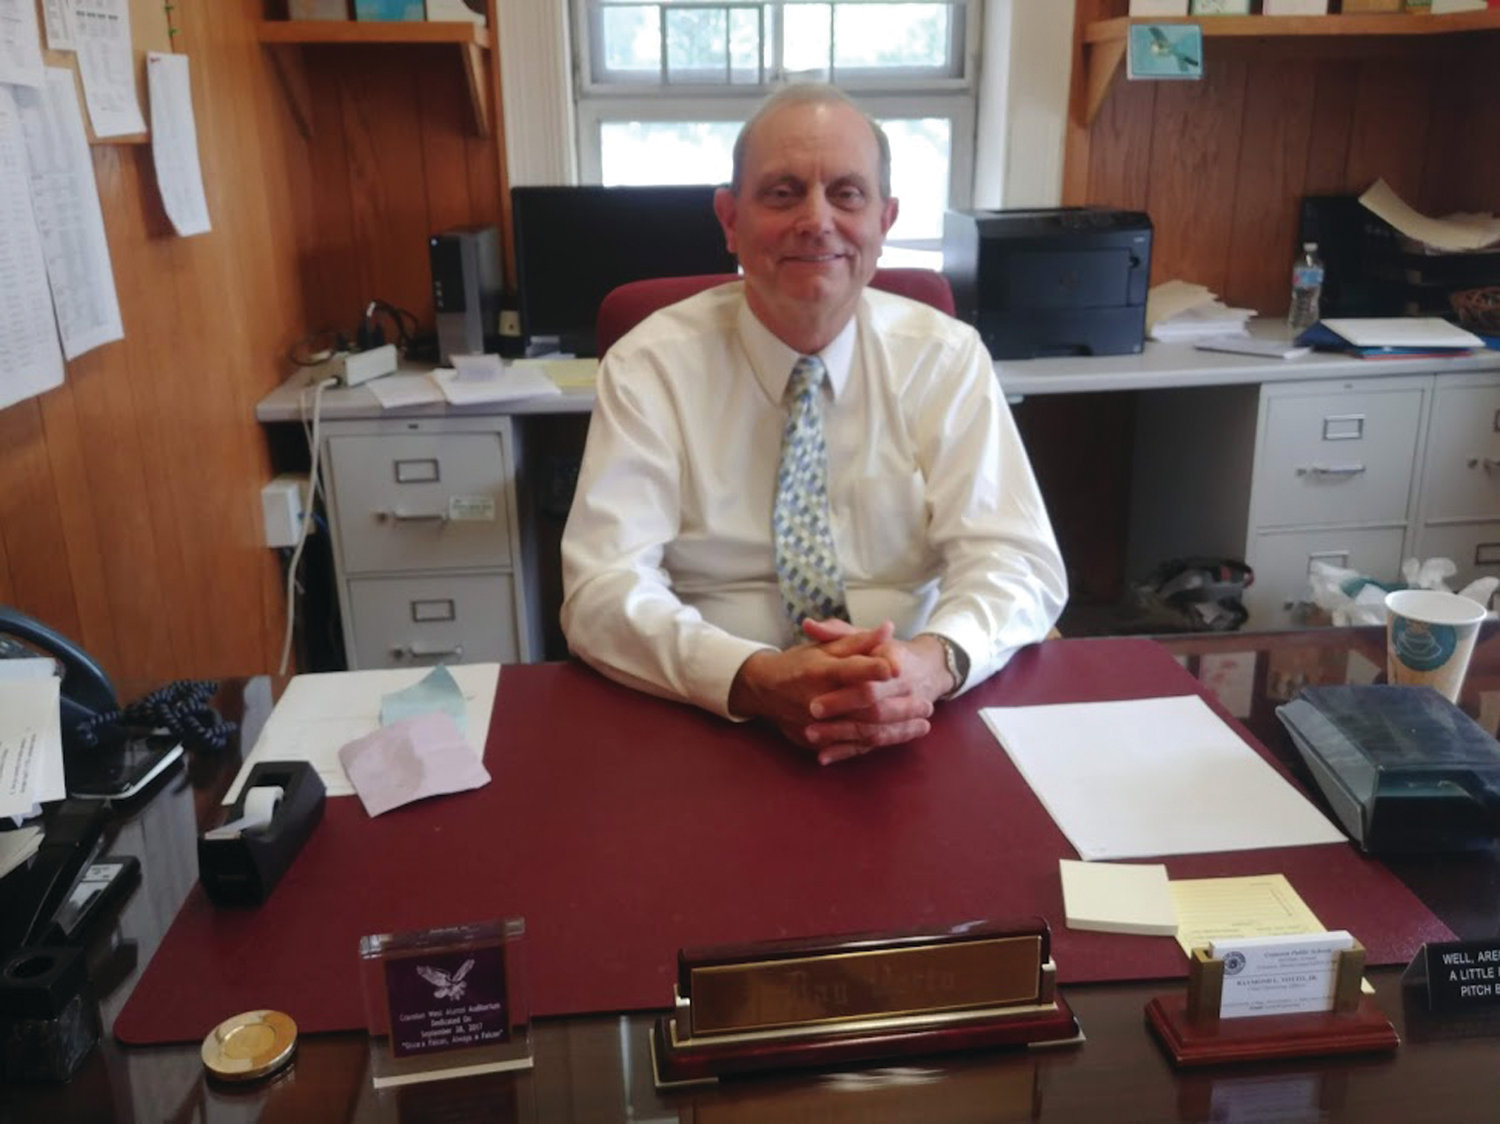 MOVING ON: Raymond Votto recently retired after 15 years as chief operating officer for Cranston Public Schools.